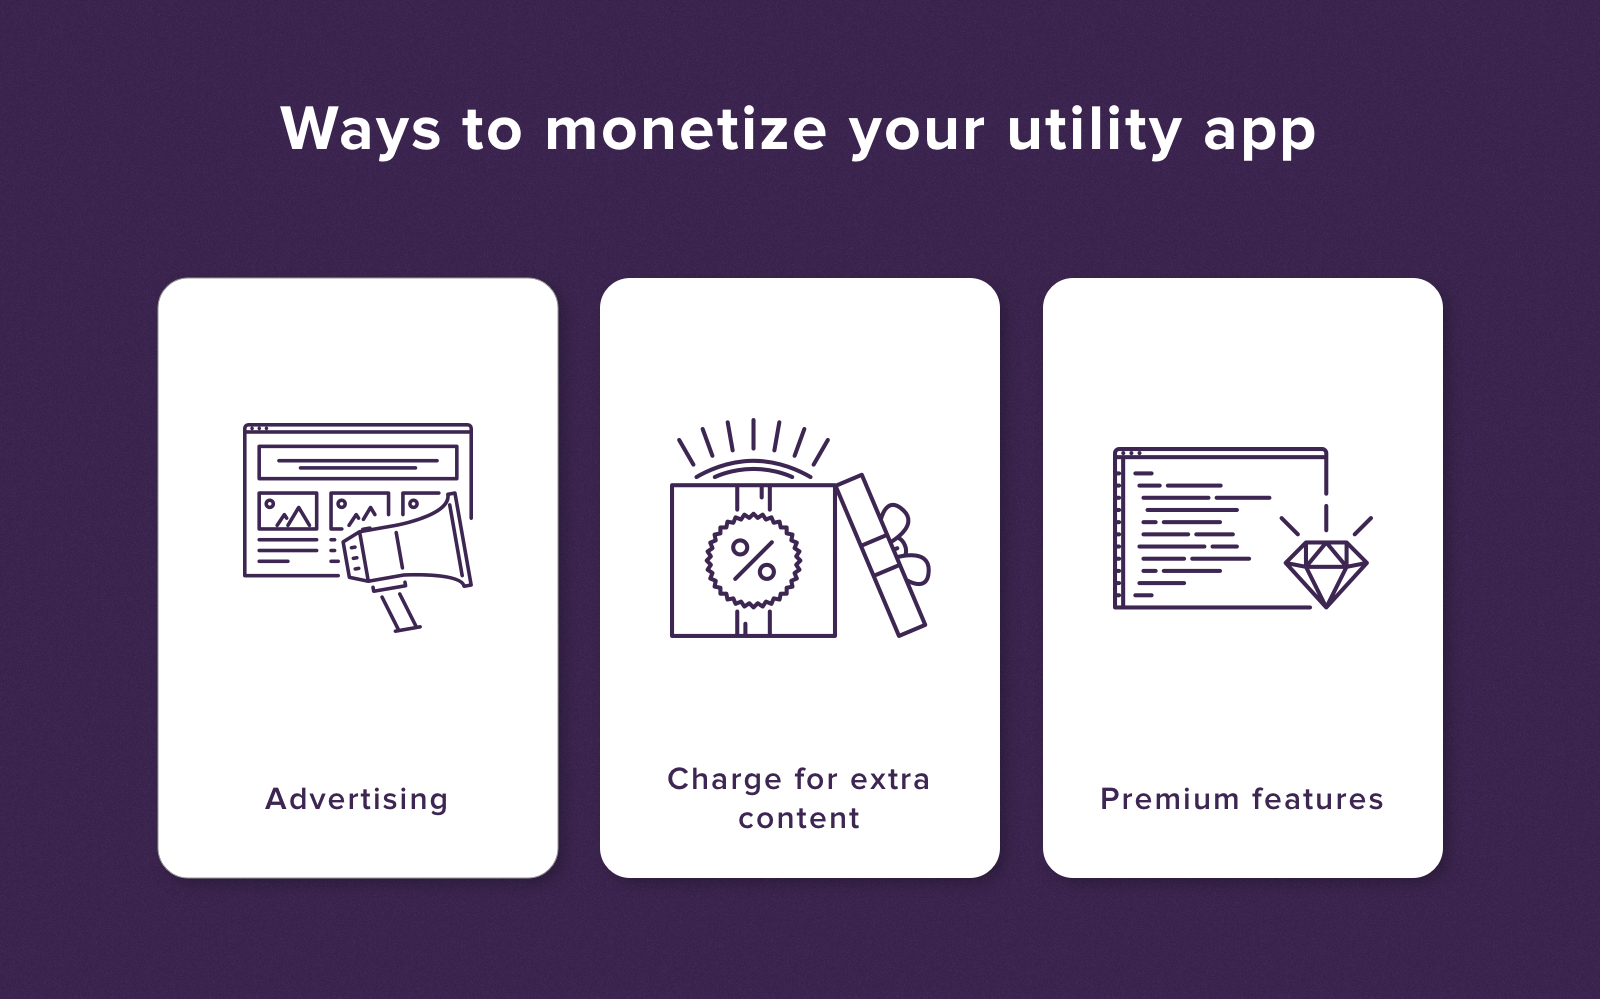 Utility app monetization